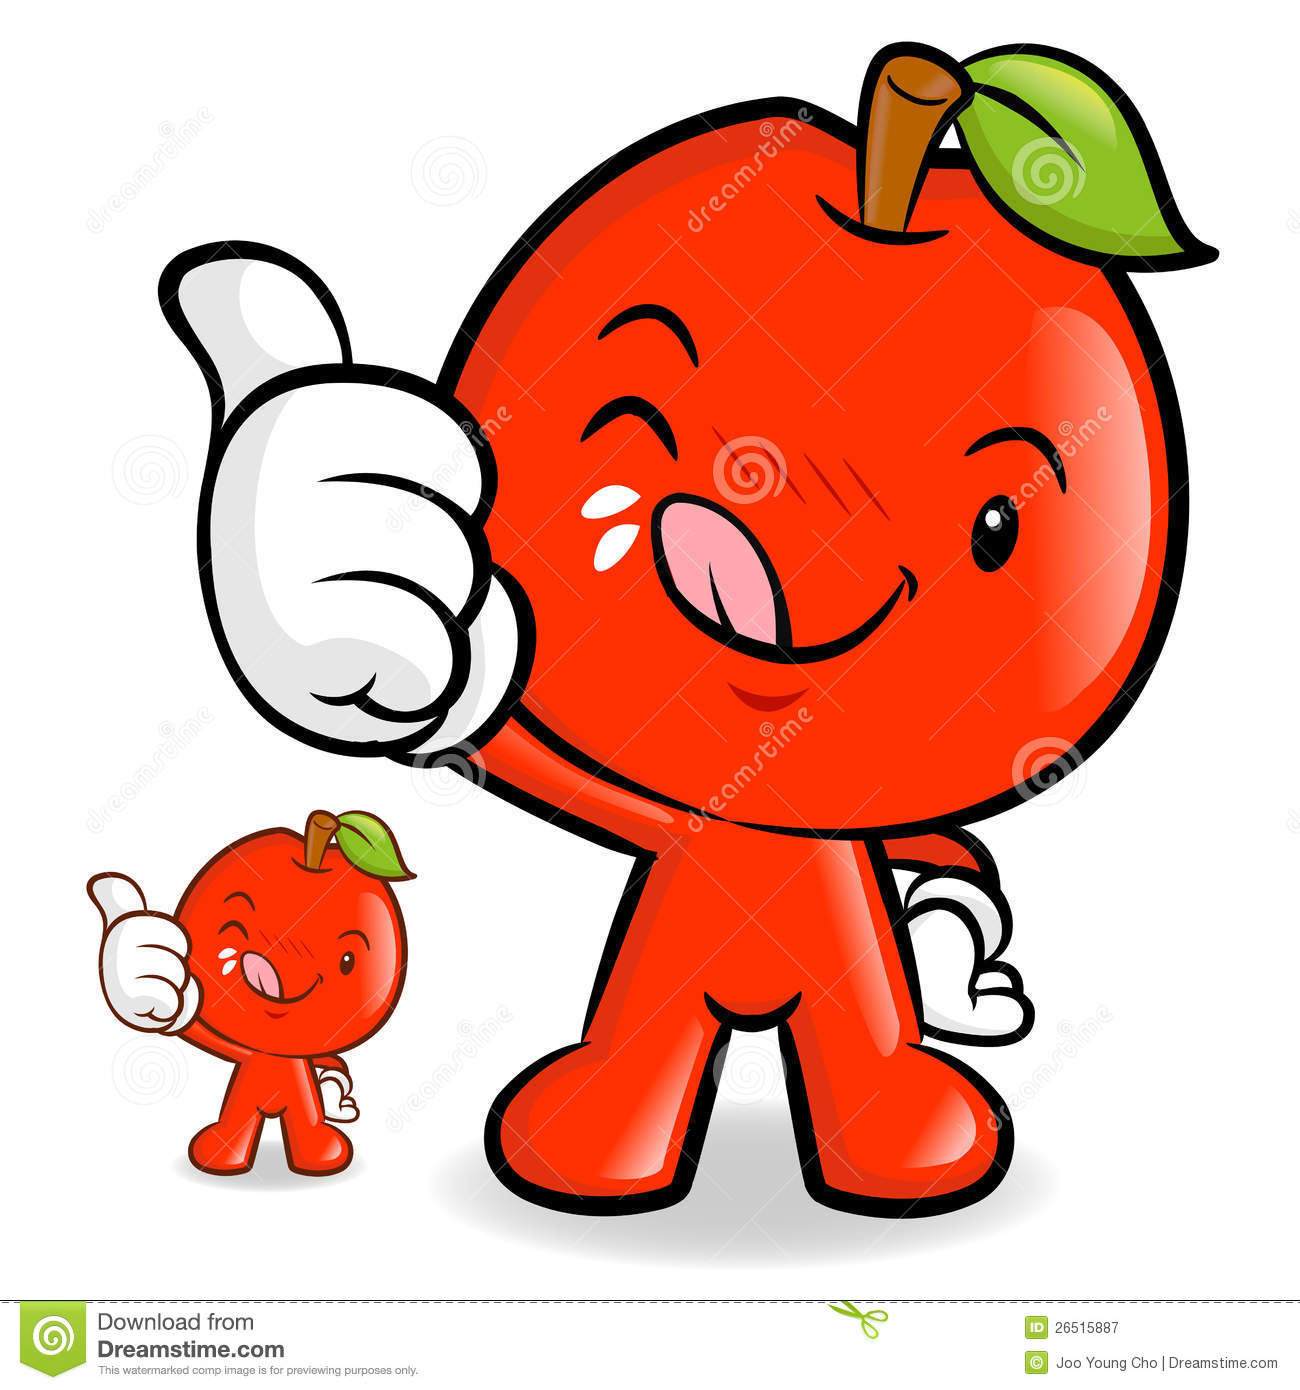 Yuck Character Design : Delicious red apple character royalty free stock